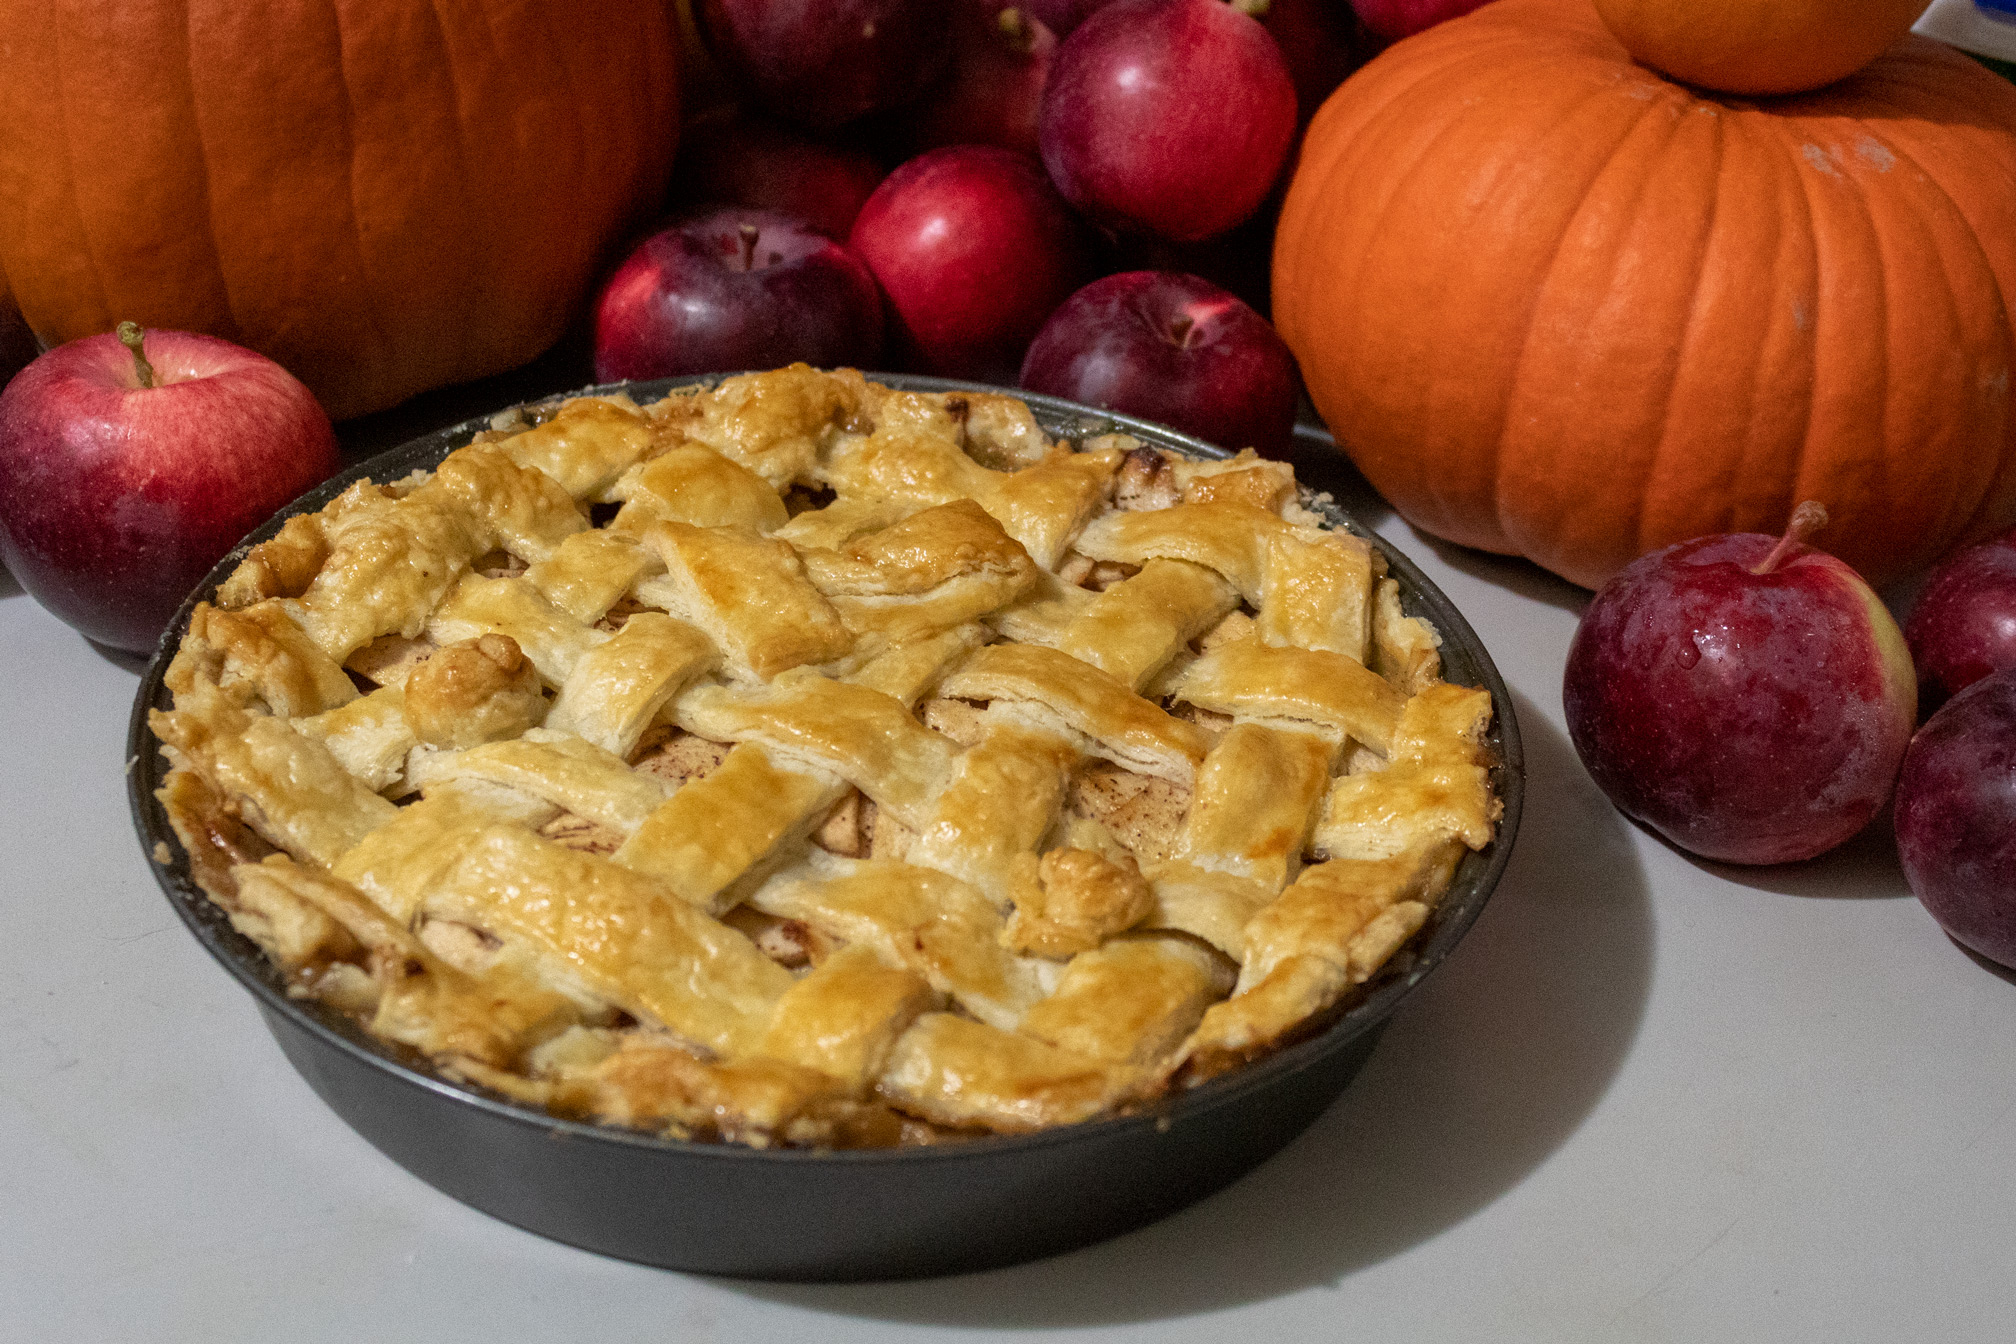 Apple pie with latticed top crust viewed from a skewed angle against a backdrop of Spartan apples and pumpkins